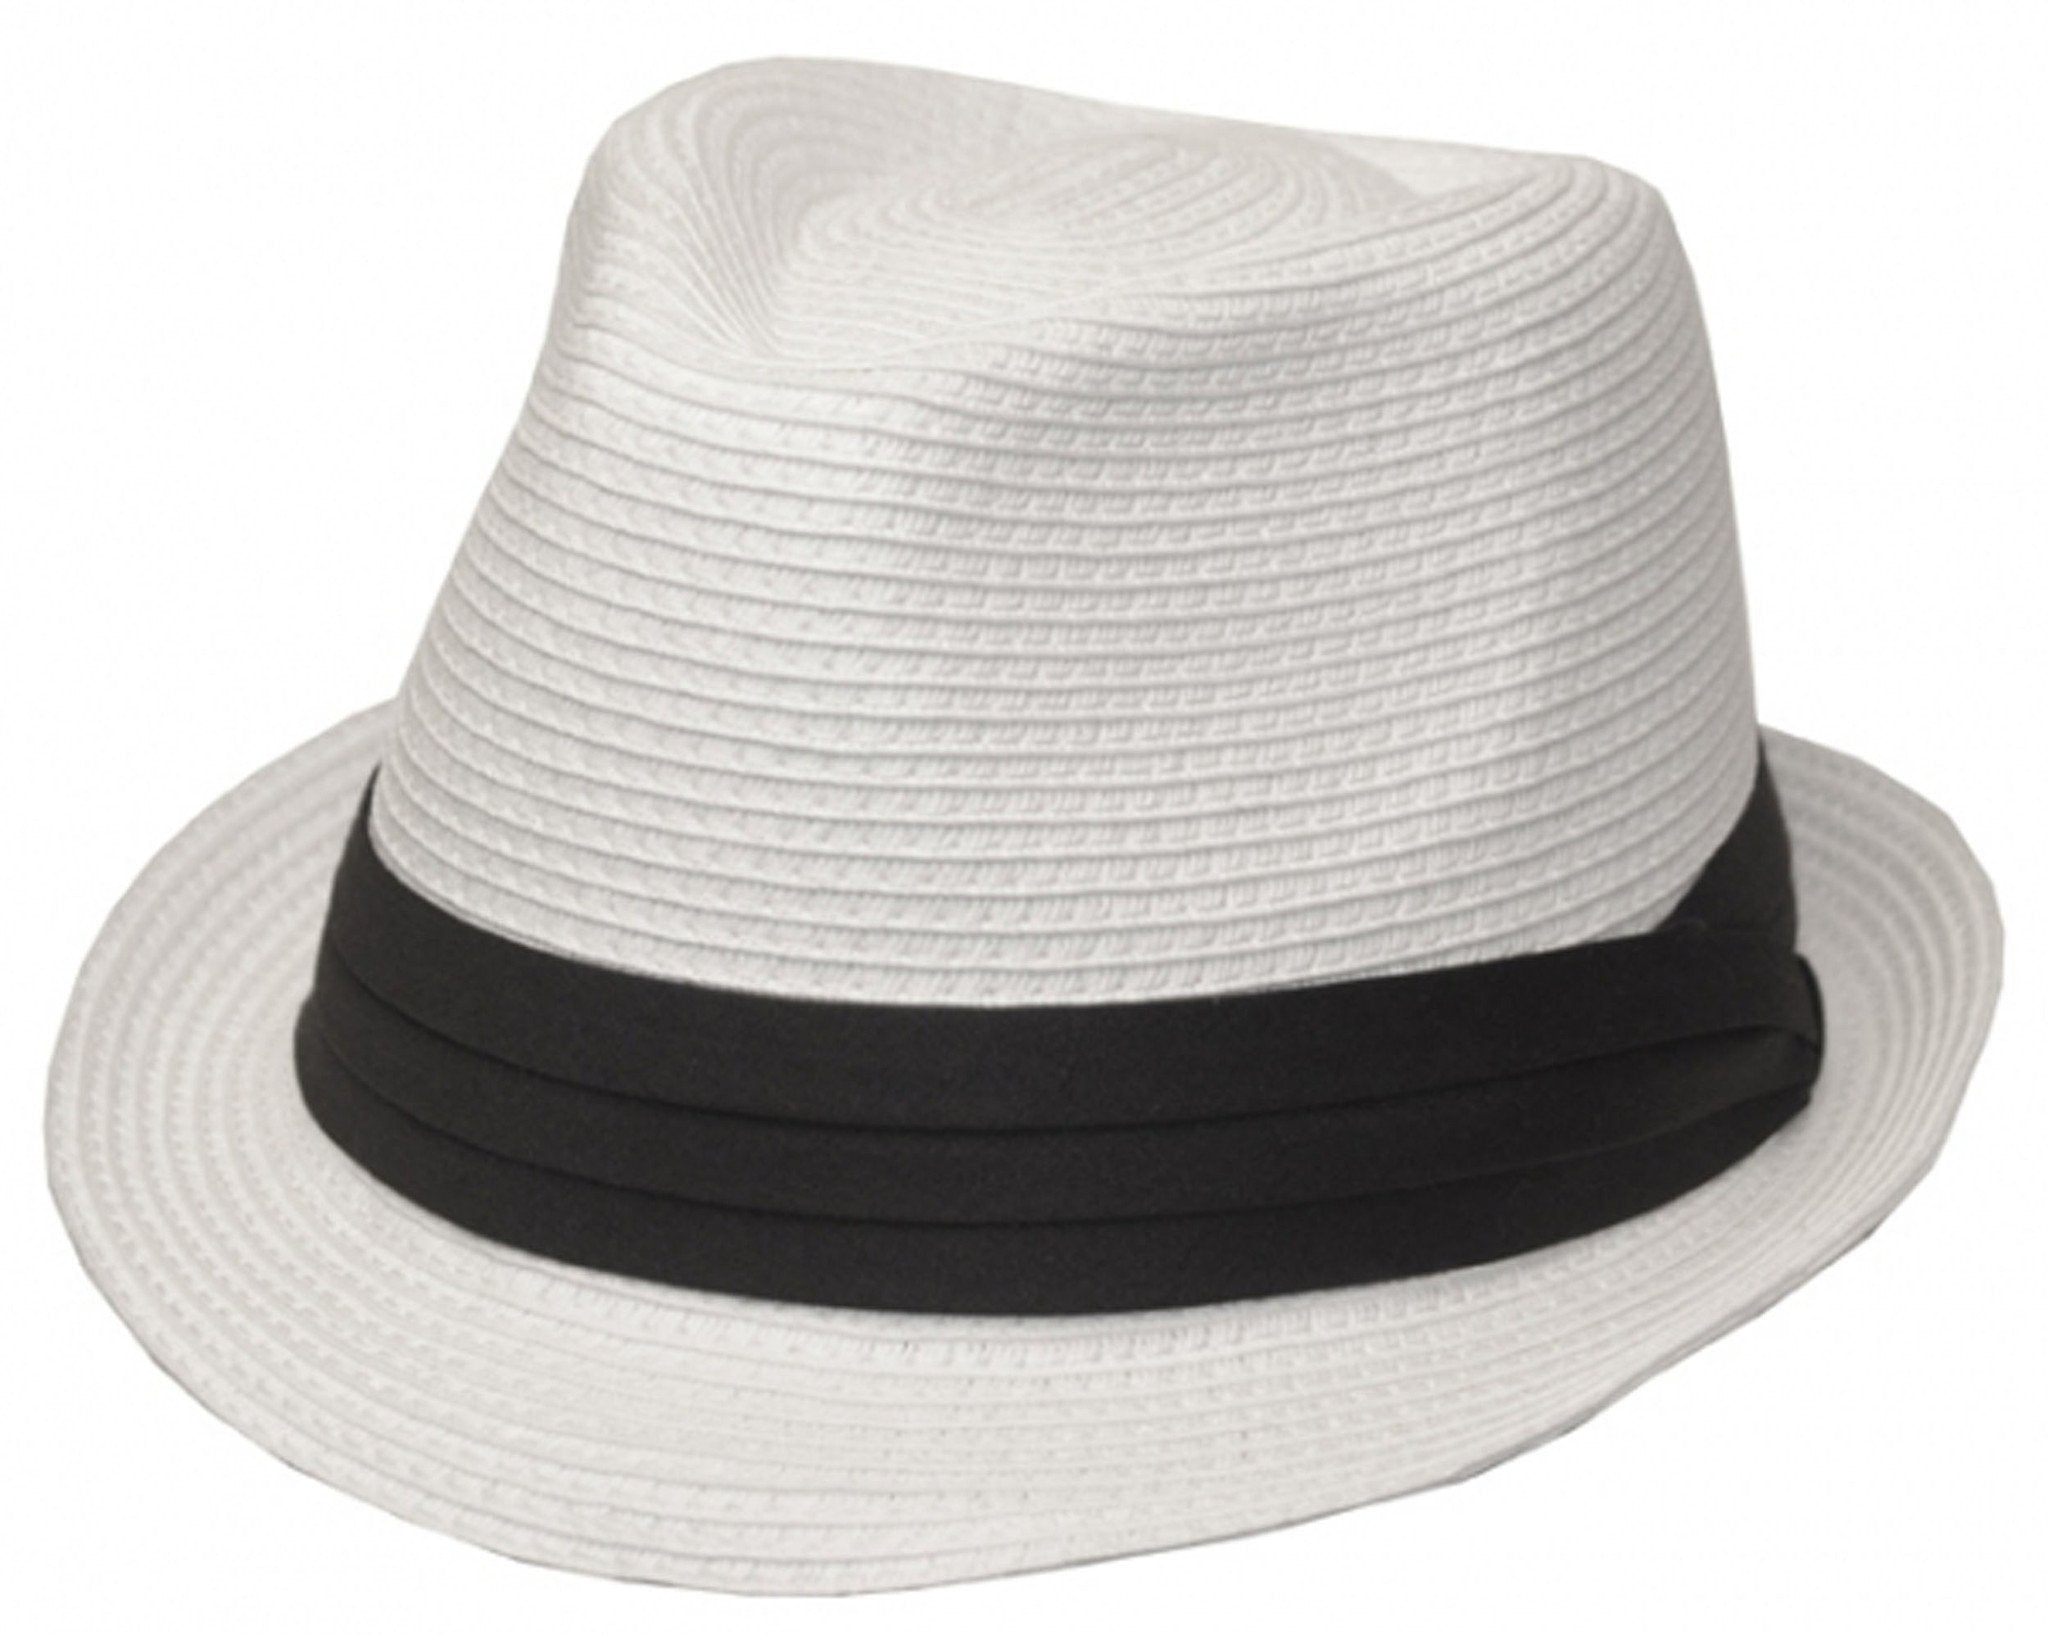 8f91b4f9091be Mens Structured 100% Paper Straw Black Band Fedora Hat - Sakkas Store